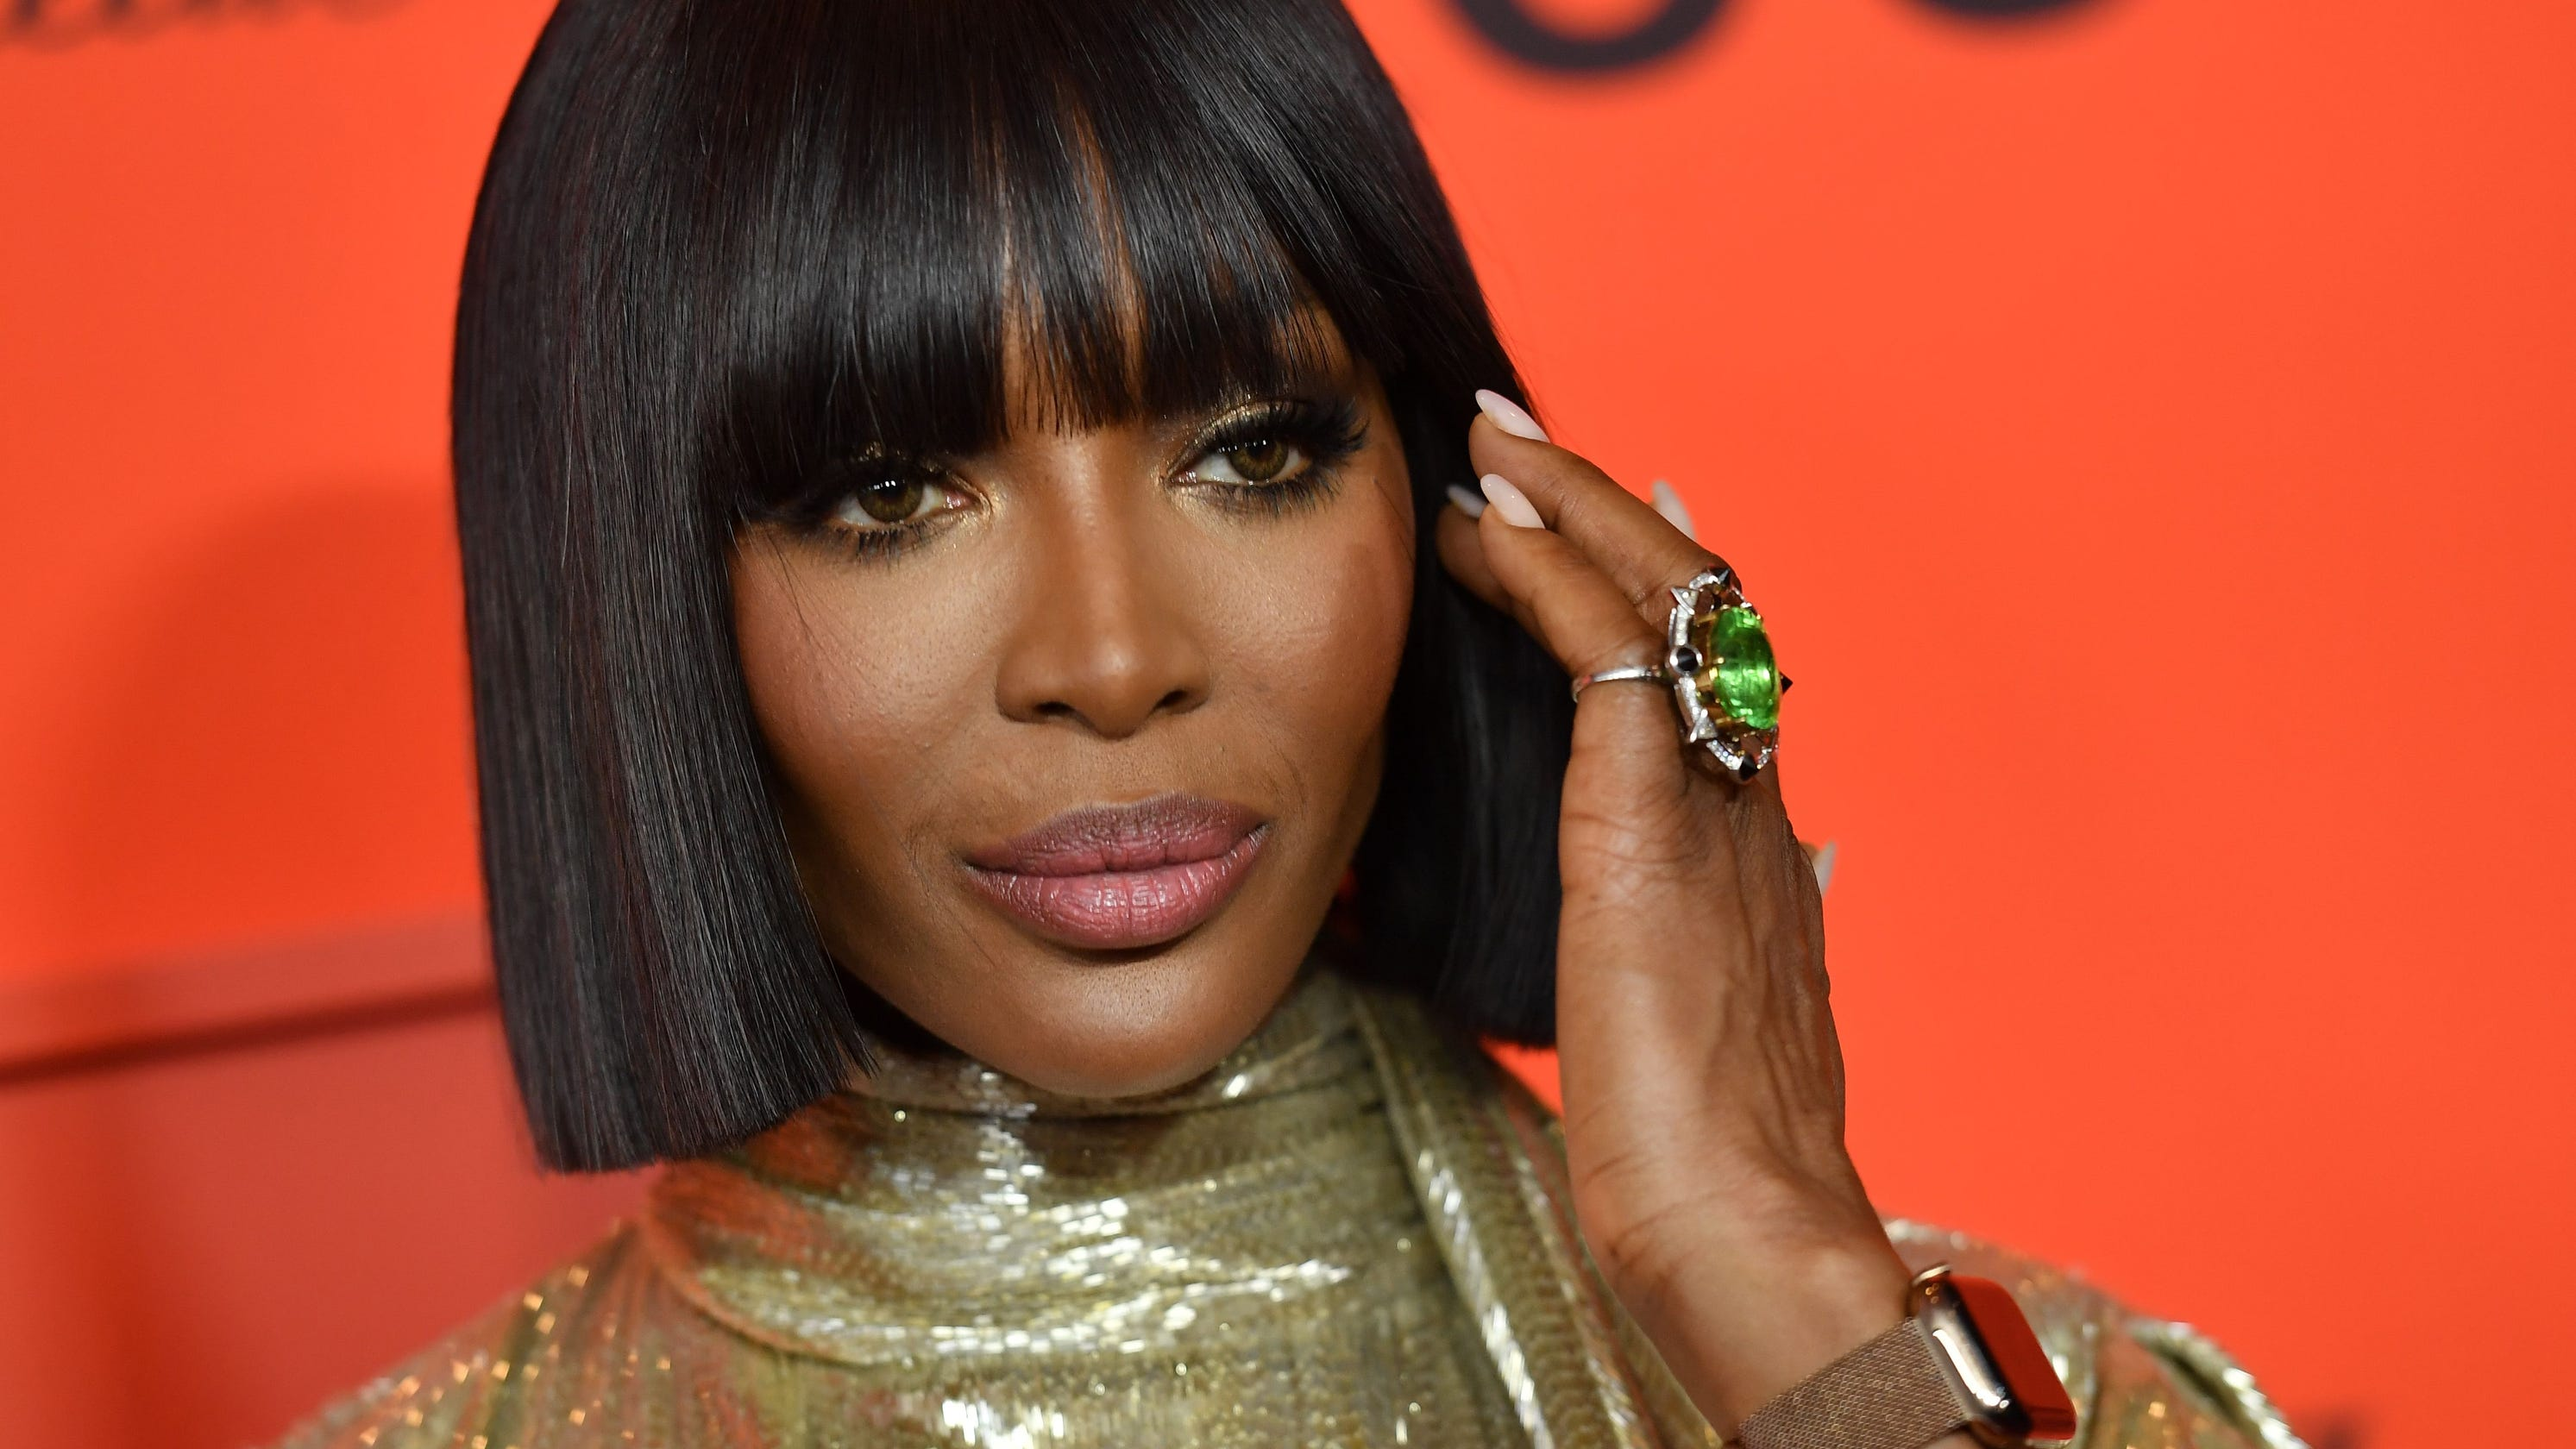 Naomi Campbell covers Vogue, talks experience with racism and advocating for Black models - USA TODAY